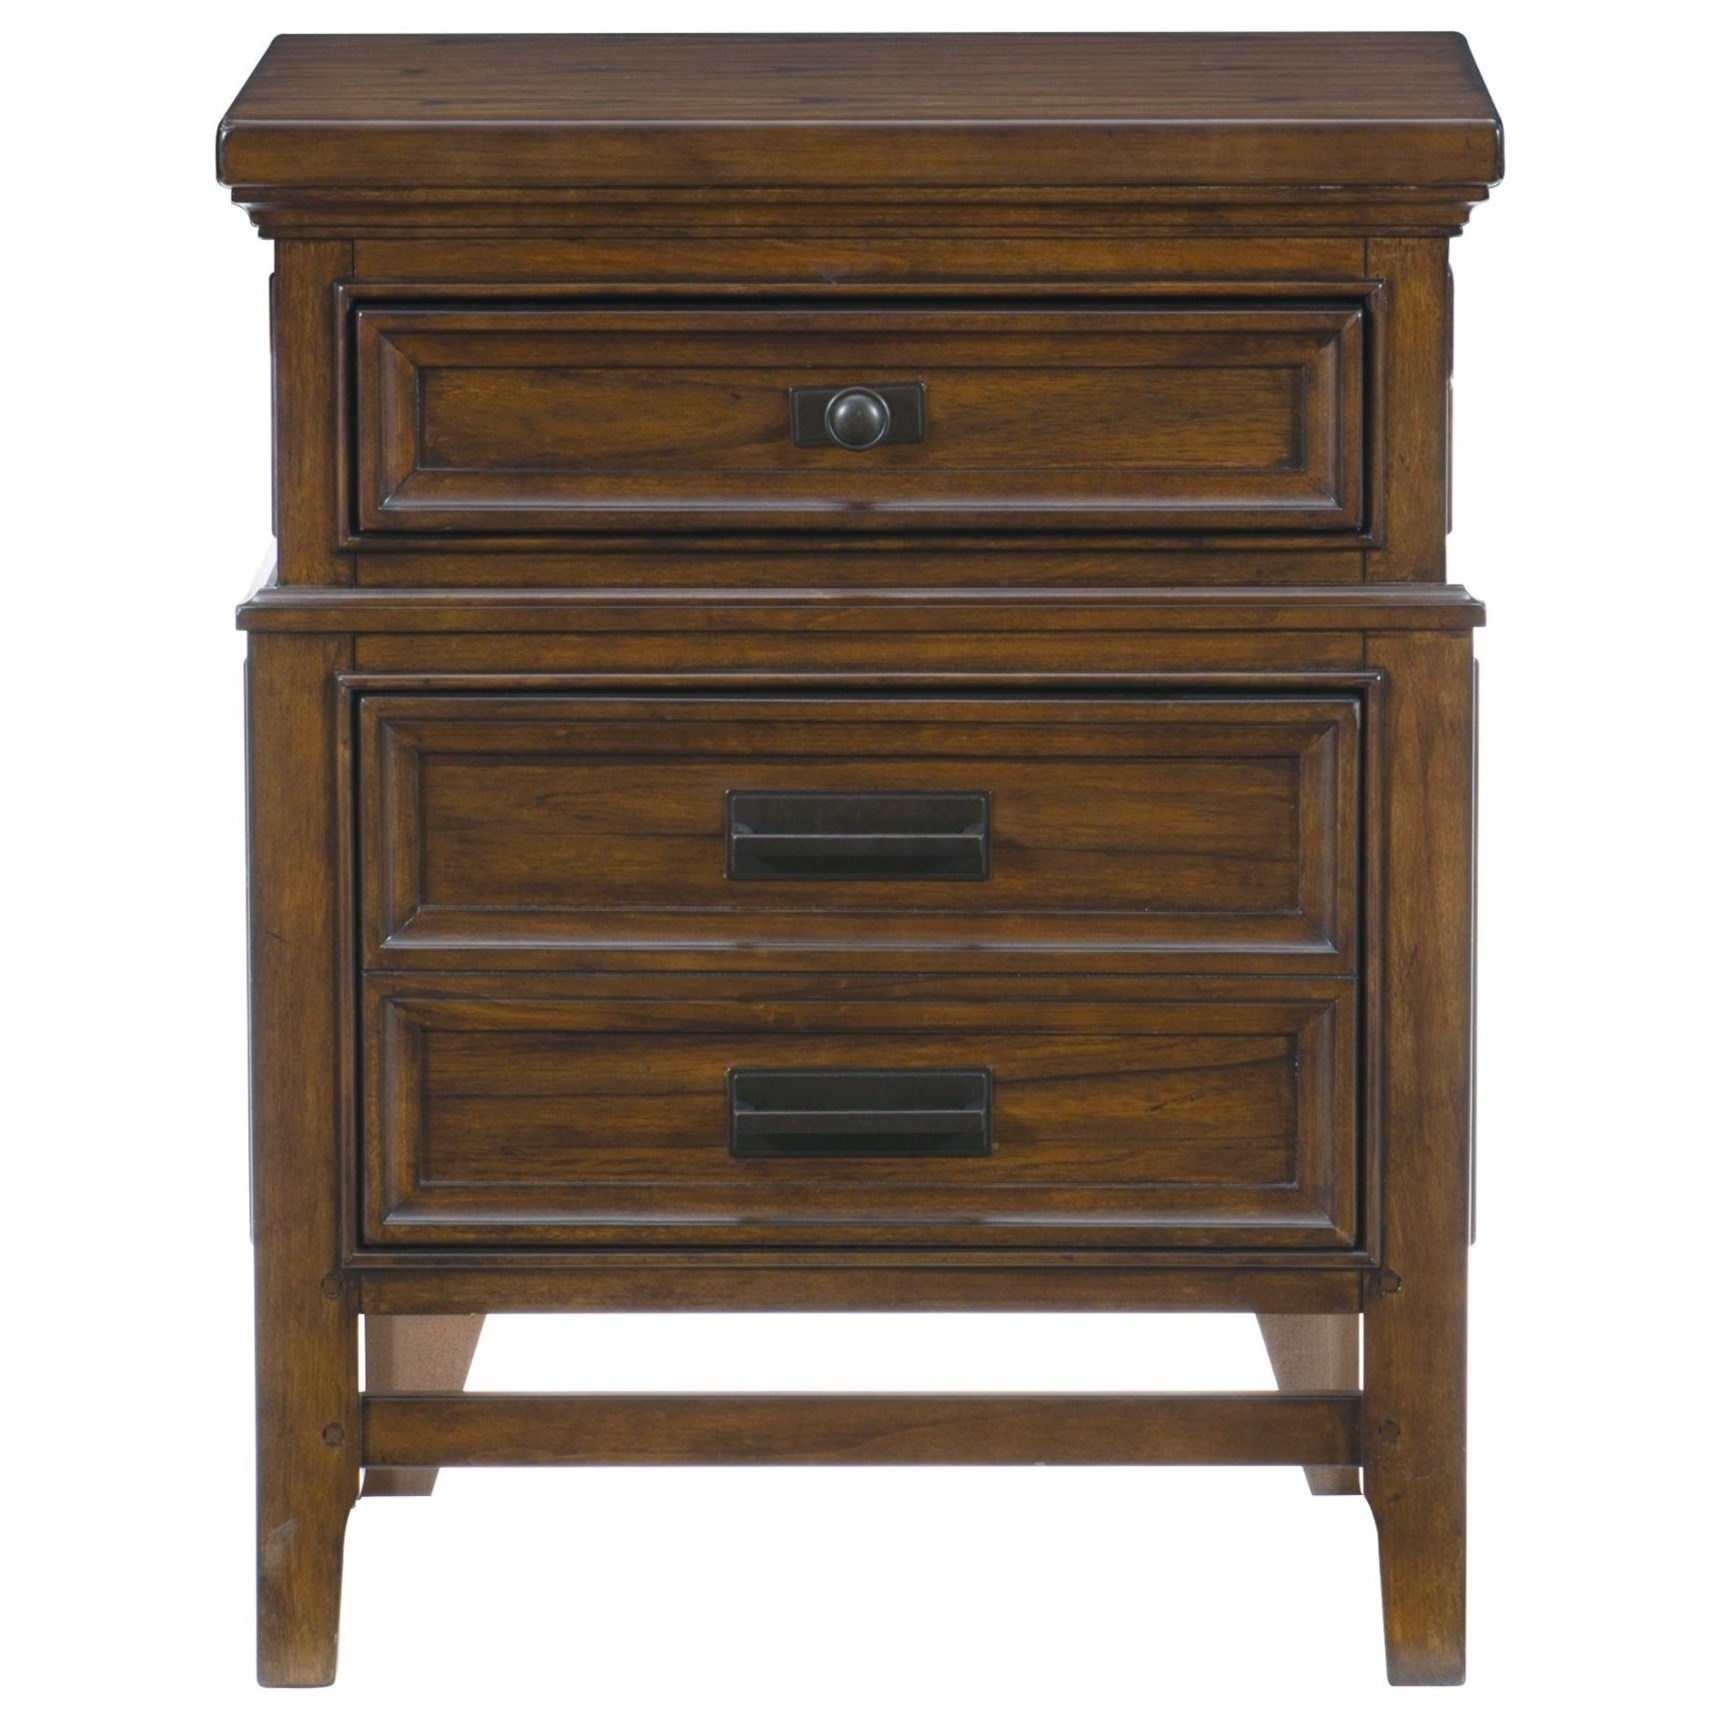 Frazier Park Nightstand by Homelegance at Rife's Home Furniture